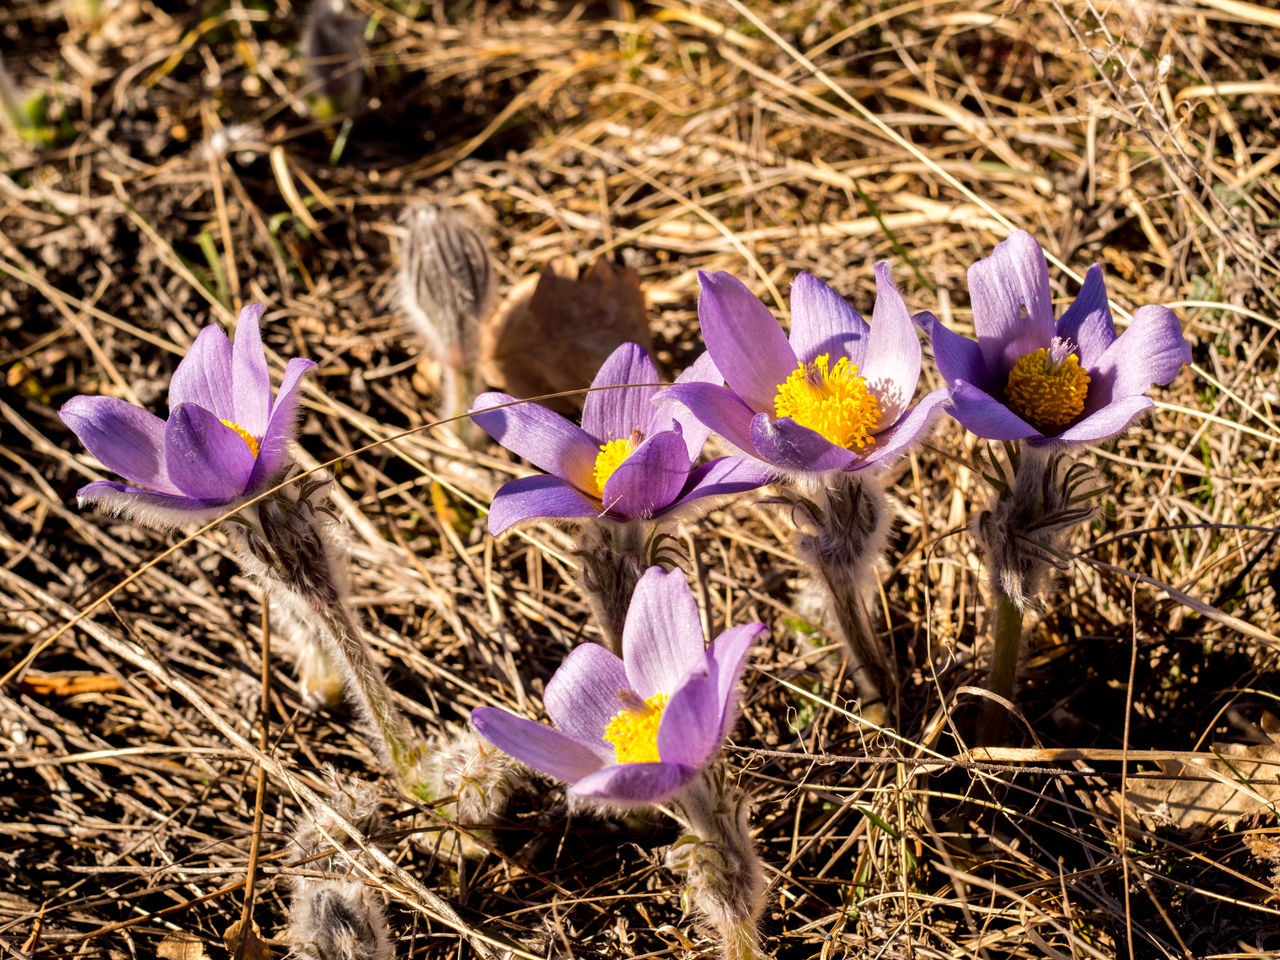 flower, purple, fragility, petal, growth, flower head, crocus, nature, freshness, field, beauty in nature, plant, outdoors, no people, day, close-up, blooming, animal themes